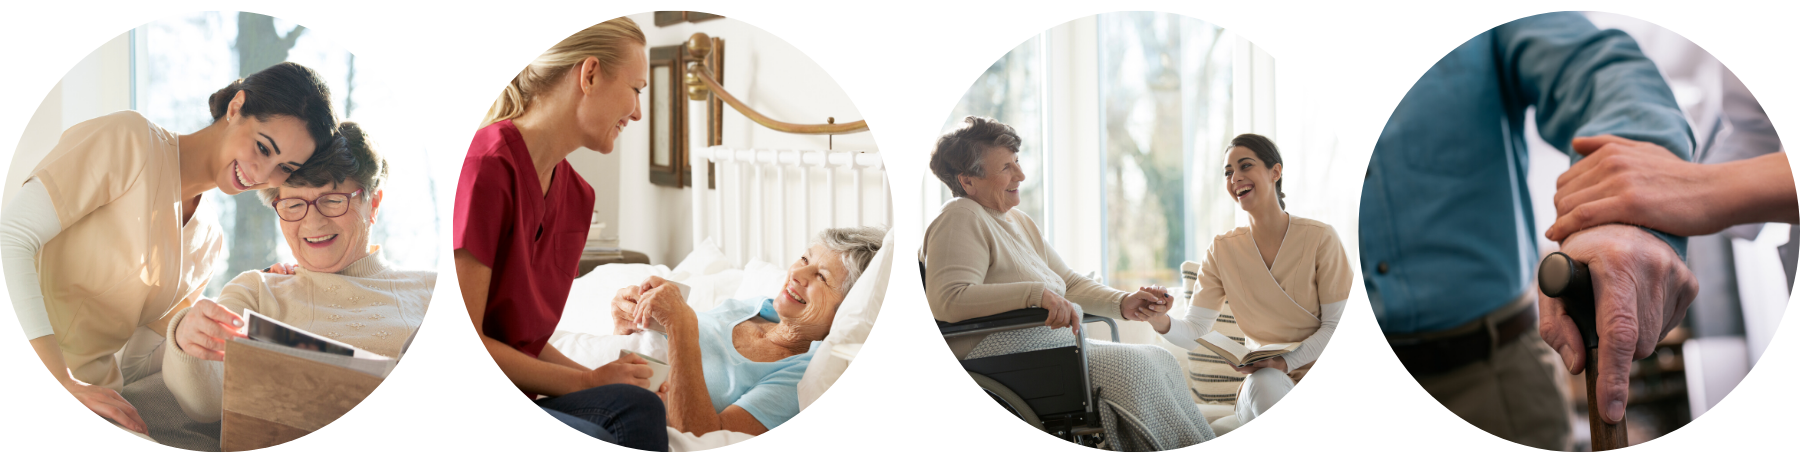 what is hospice care and what are its purposes